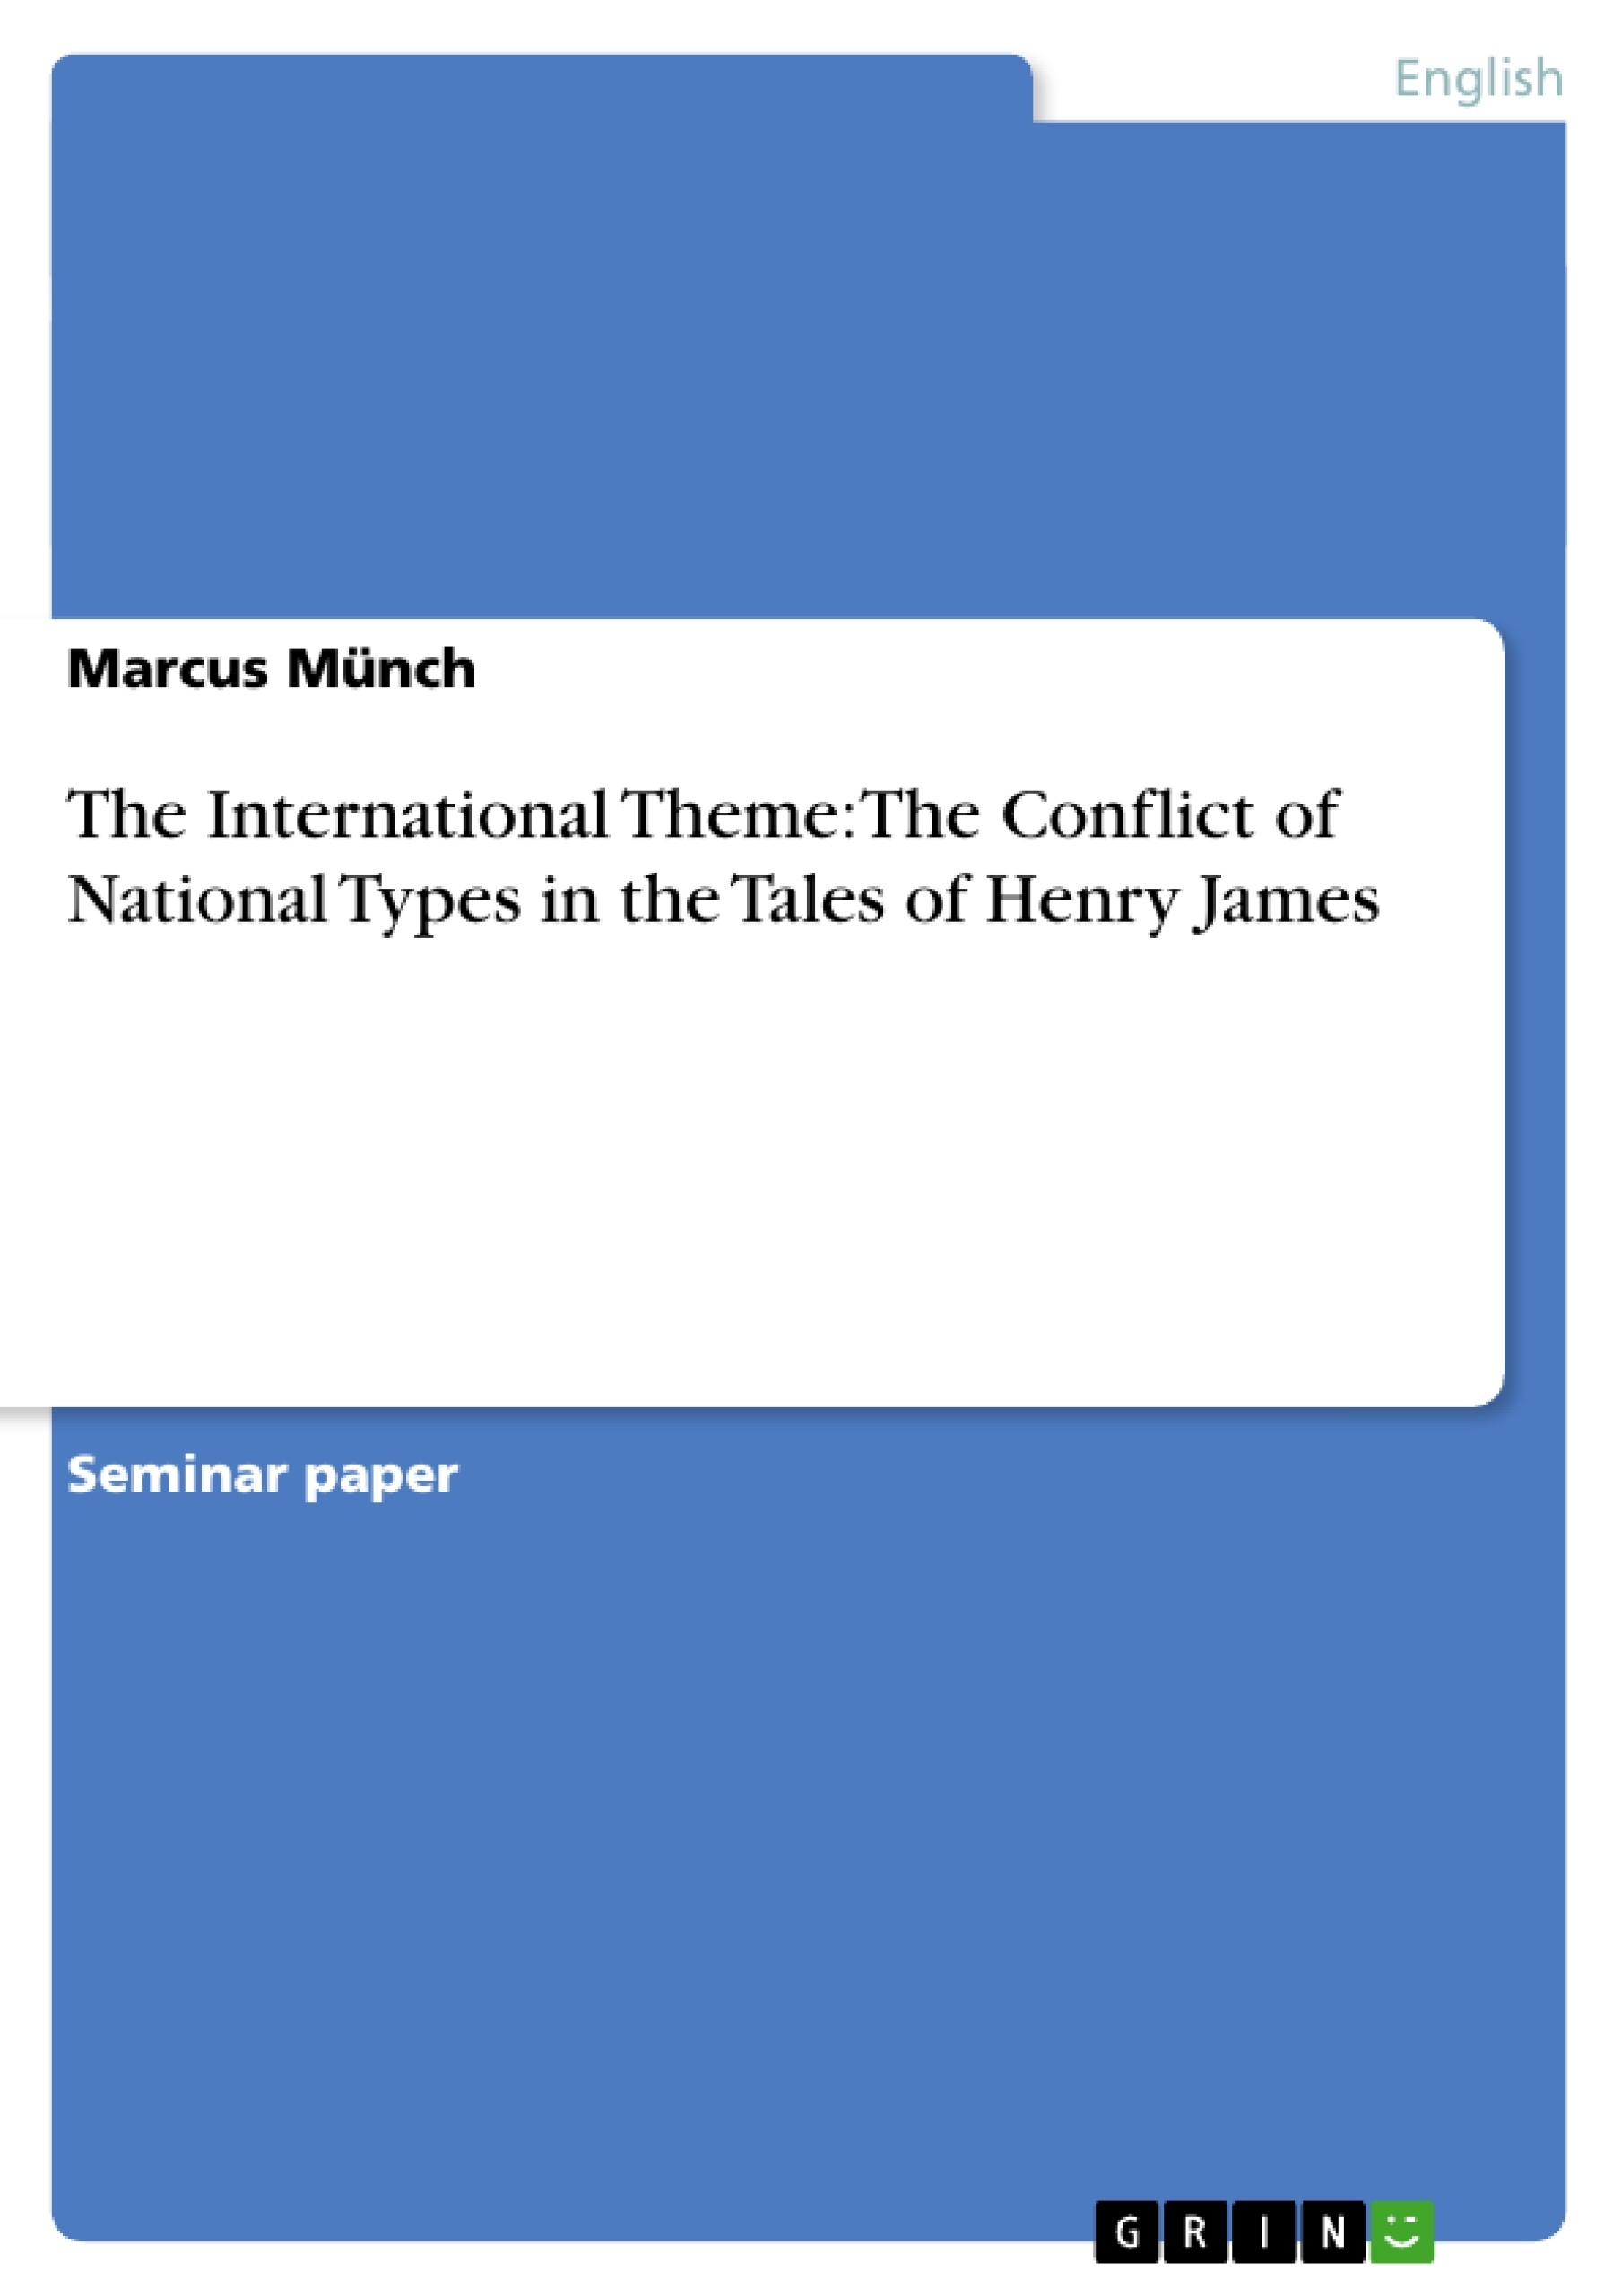 Title: The International Theme: The Conflict of National Types in the Tales of Henry James